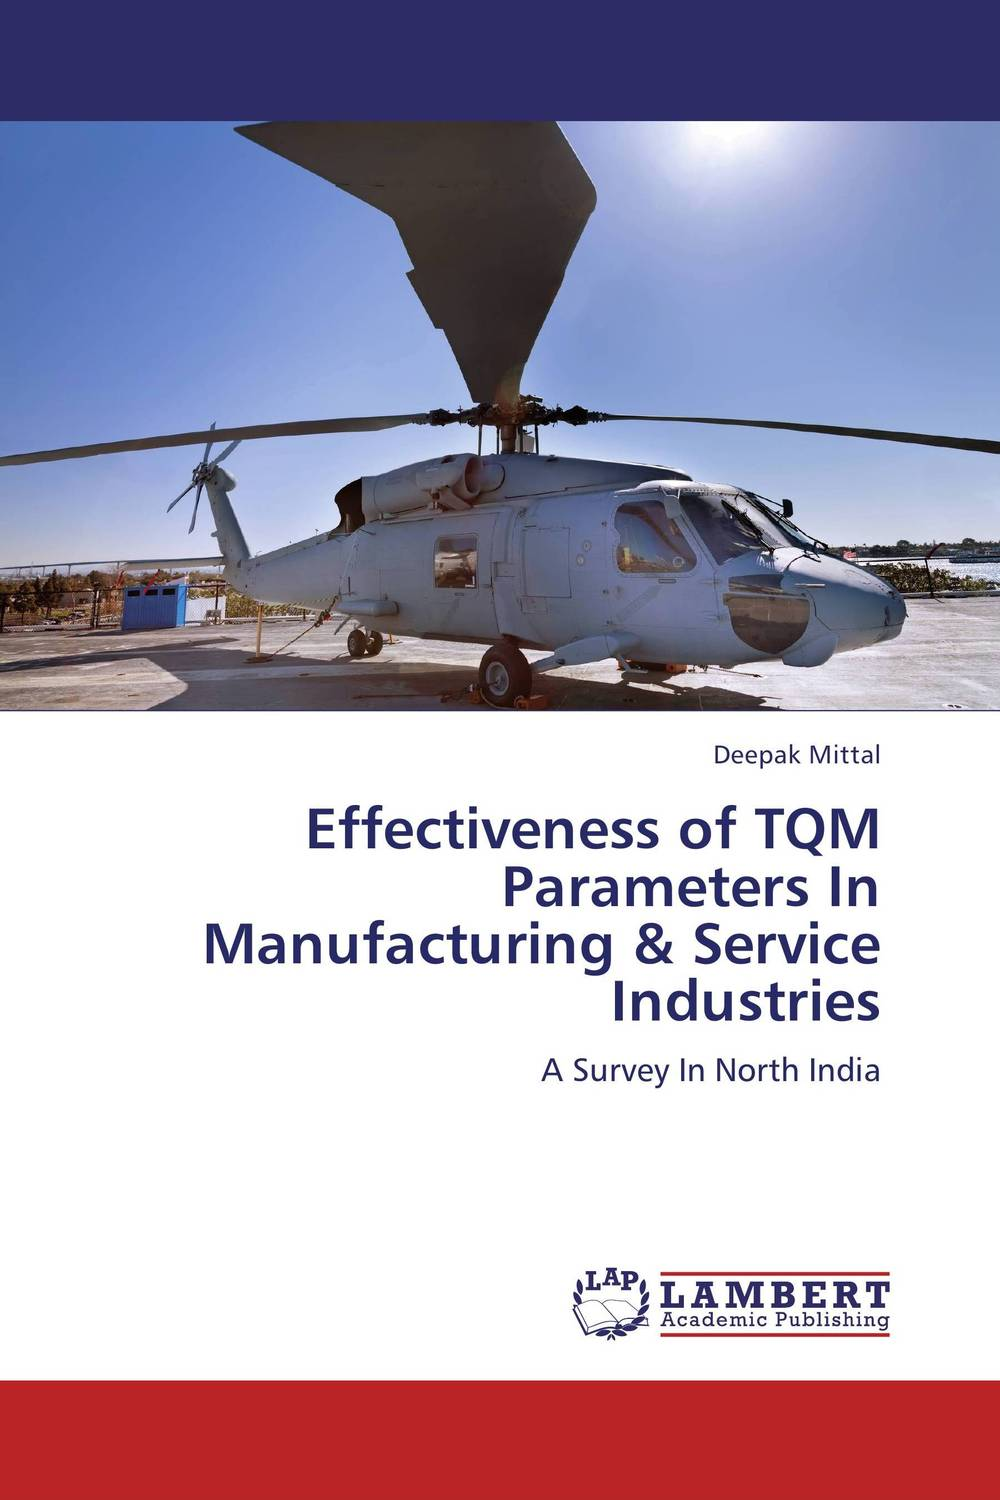 Effectiveness of TQM Parameters In Manufacturing & Service Industries robert moeller r executive s guide to it governance improving systems processes with service management cobit and itil